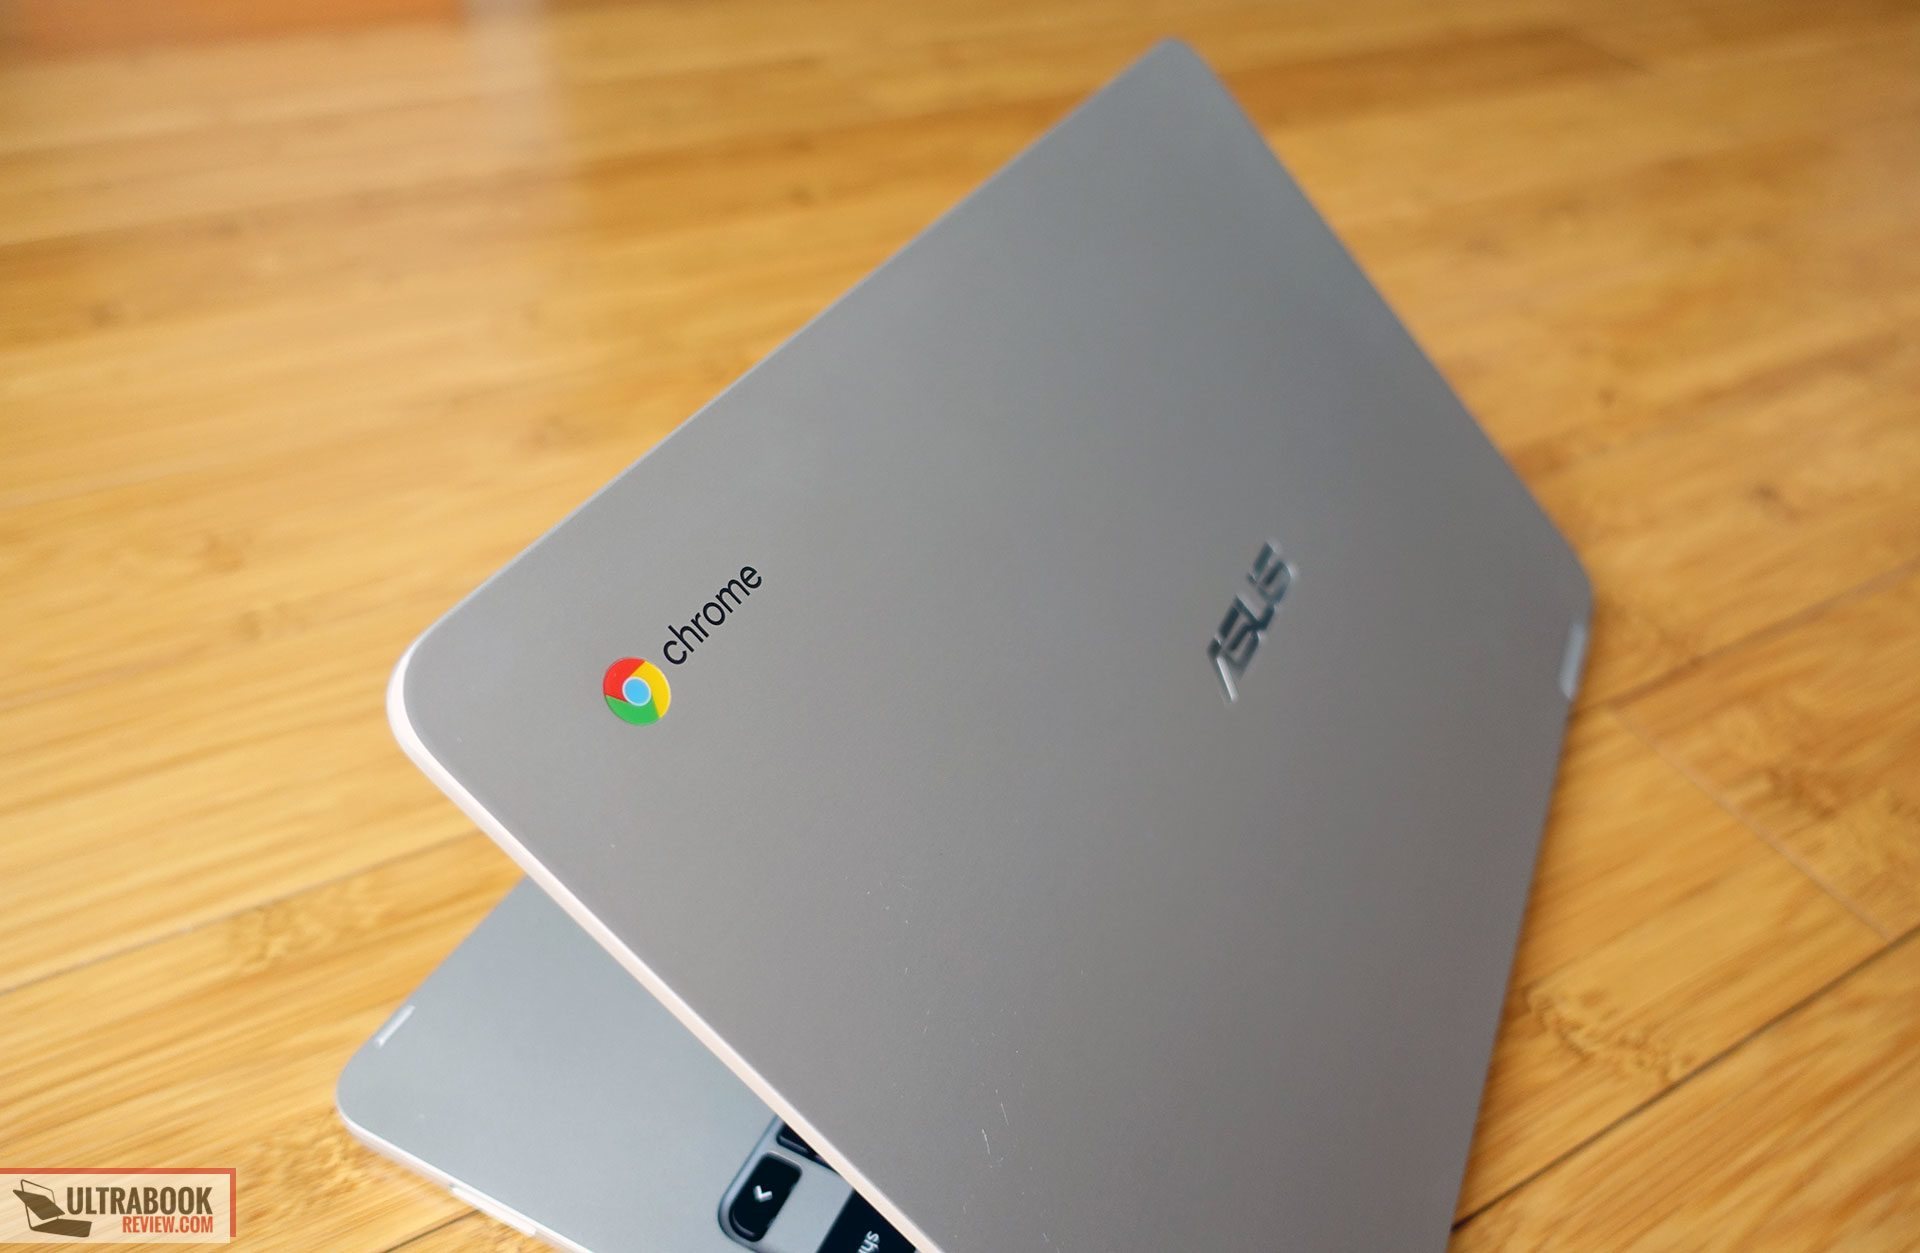 Asus Chromebook C302CA review - an excellent premium 2-in-1 Chromebook